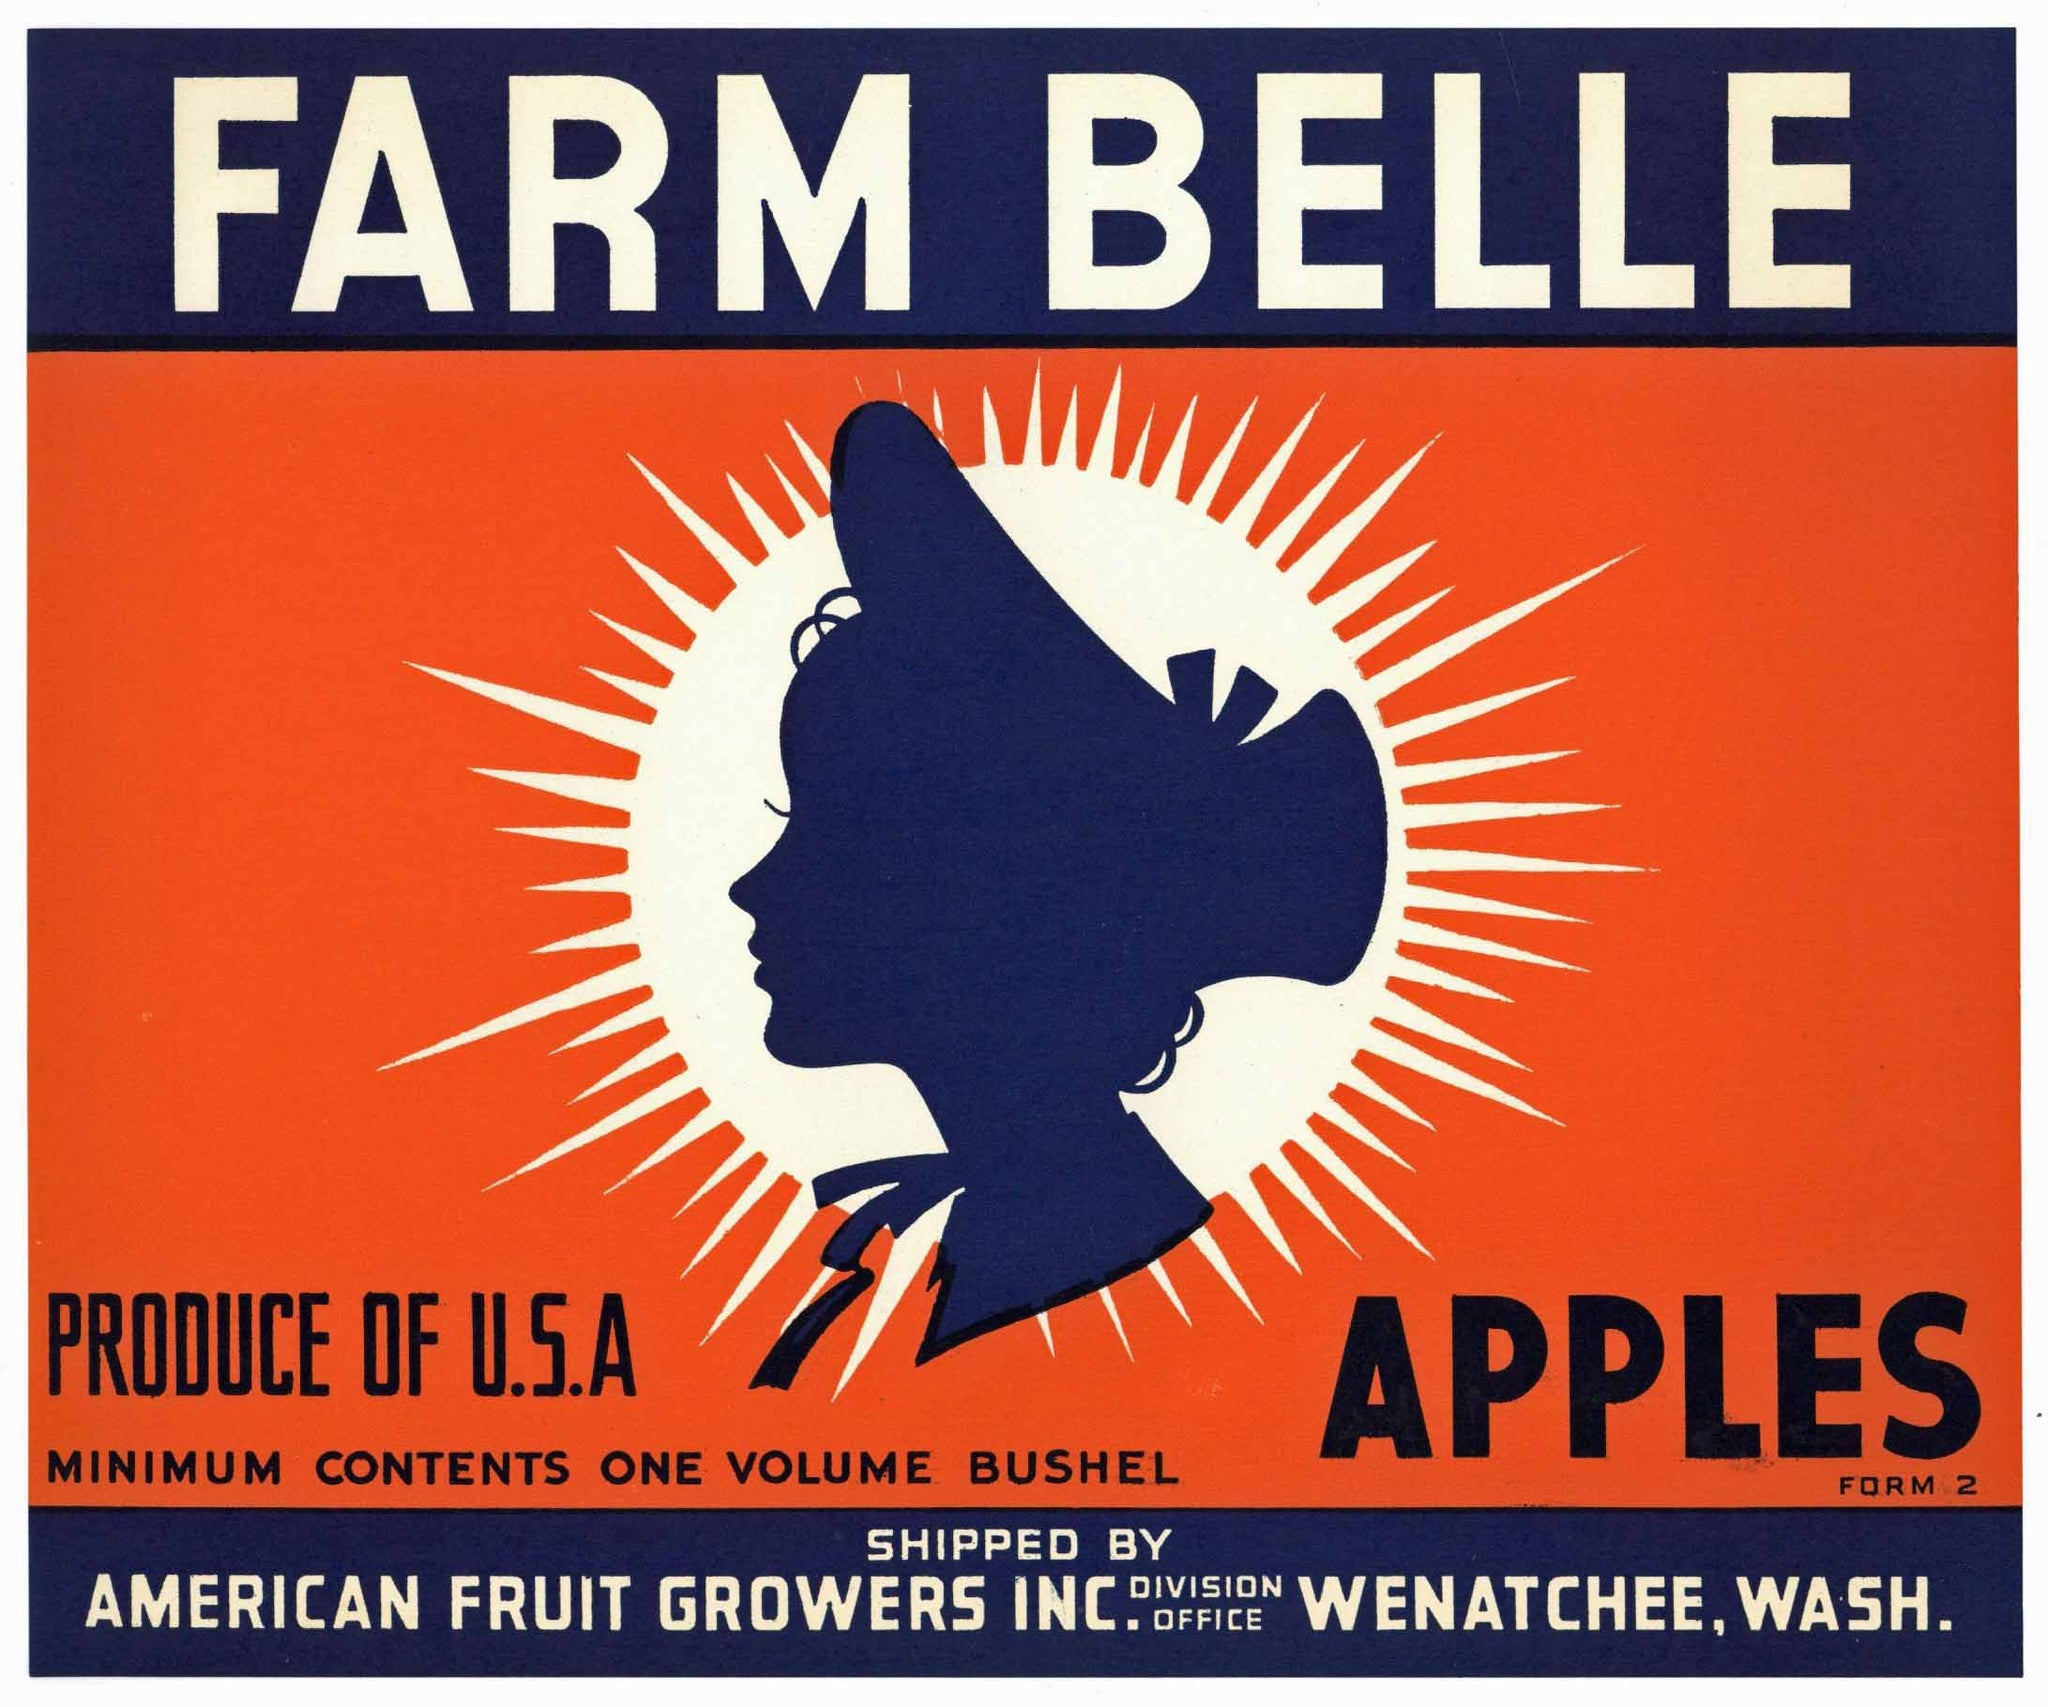 Farm Belle Brand Vintage American Fruit Growers Apple Crate Label